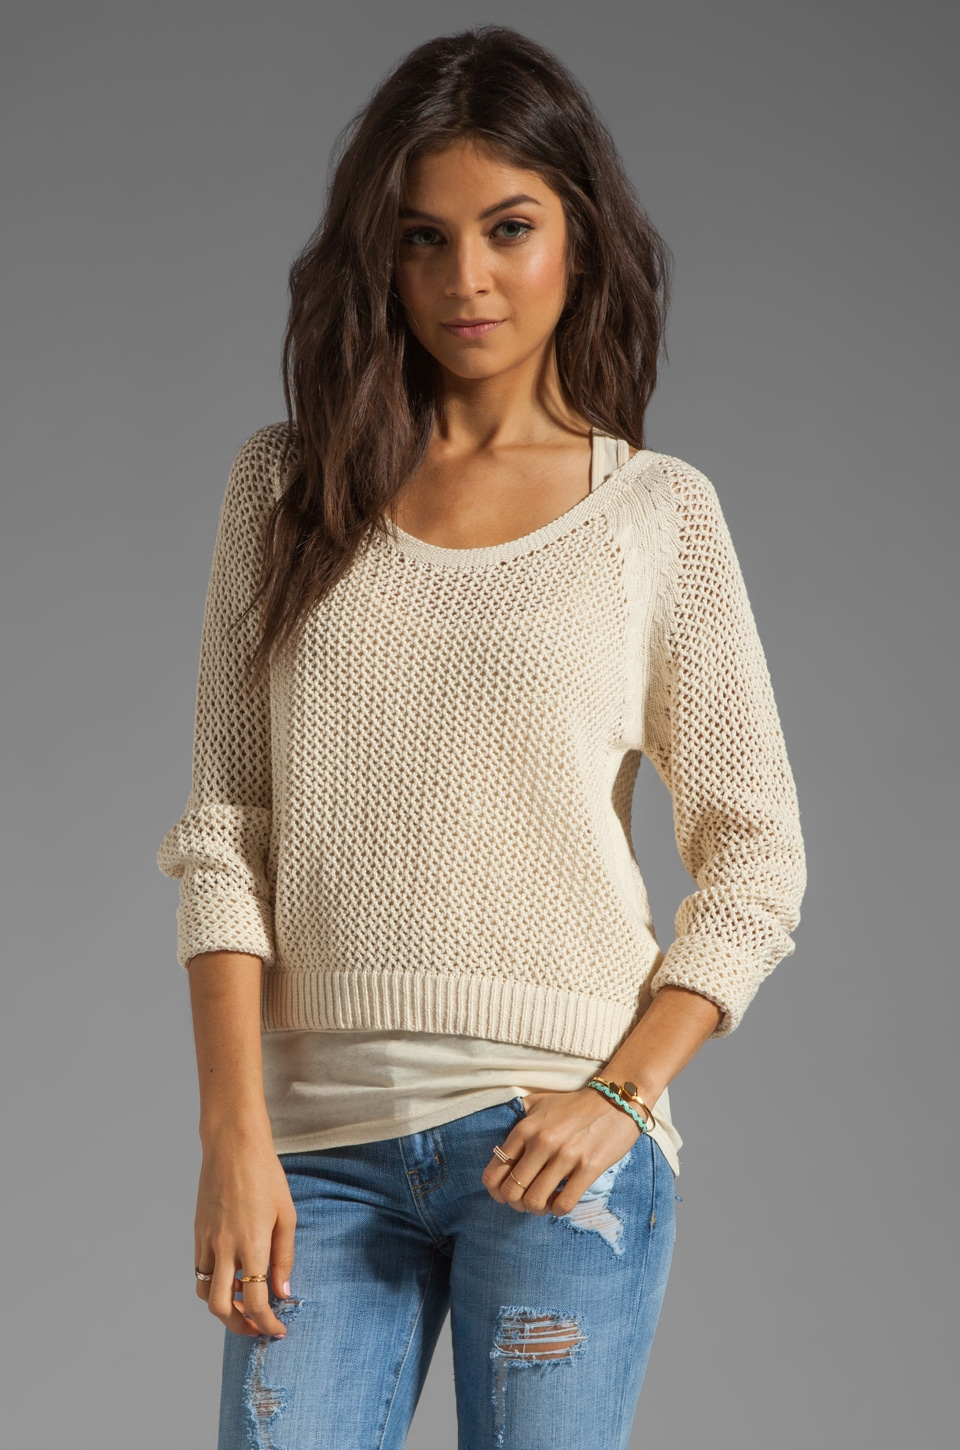 Maison Scotch 2 in 1 Mesh Long Sleeve Sweater in Cream